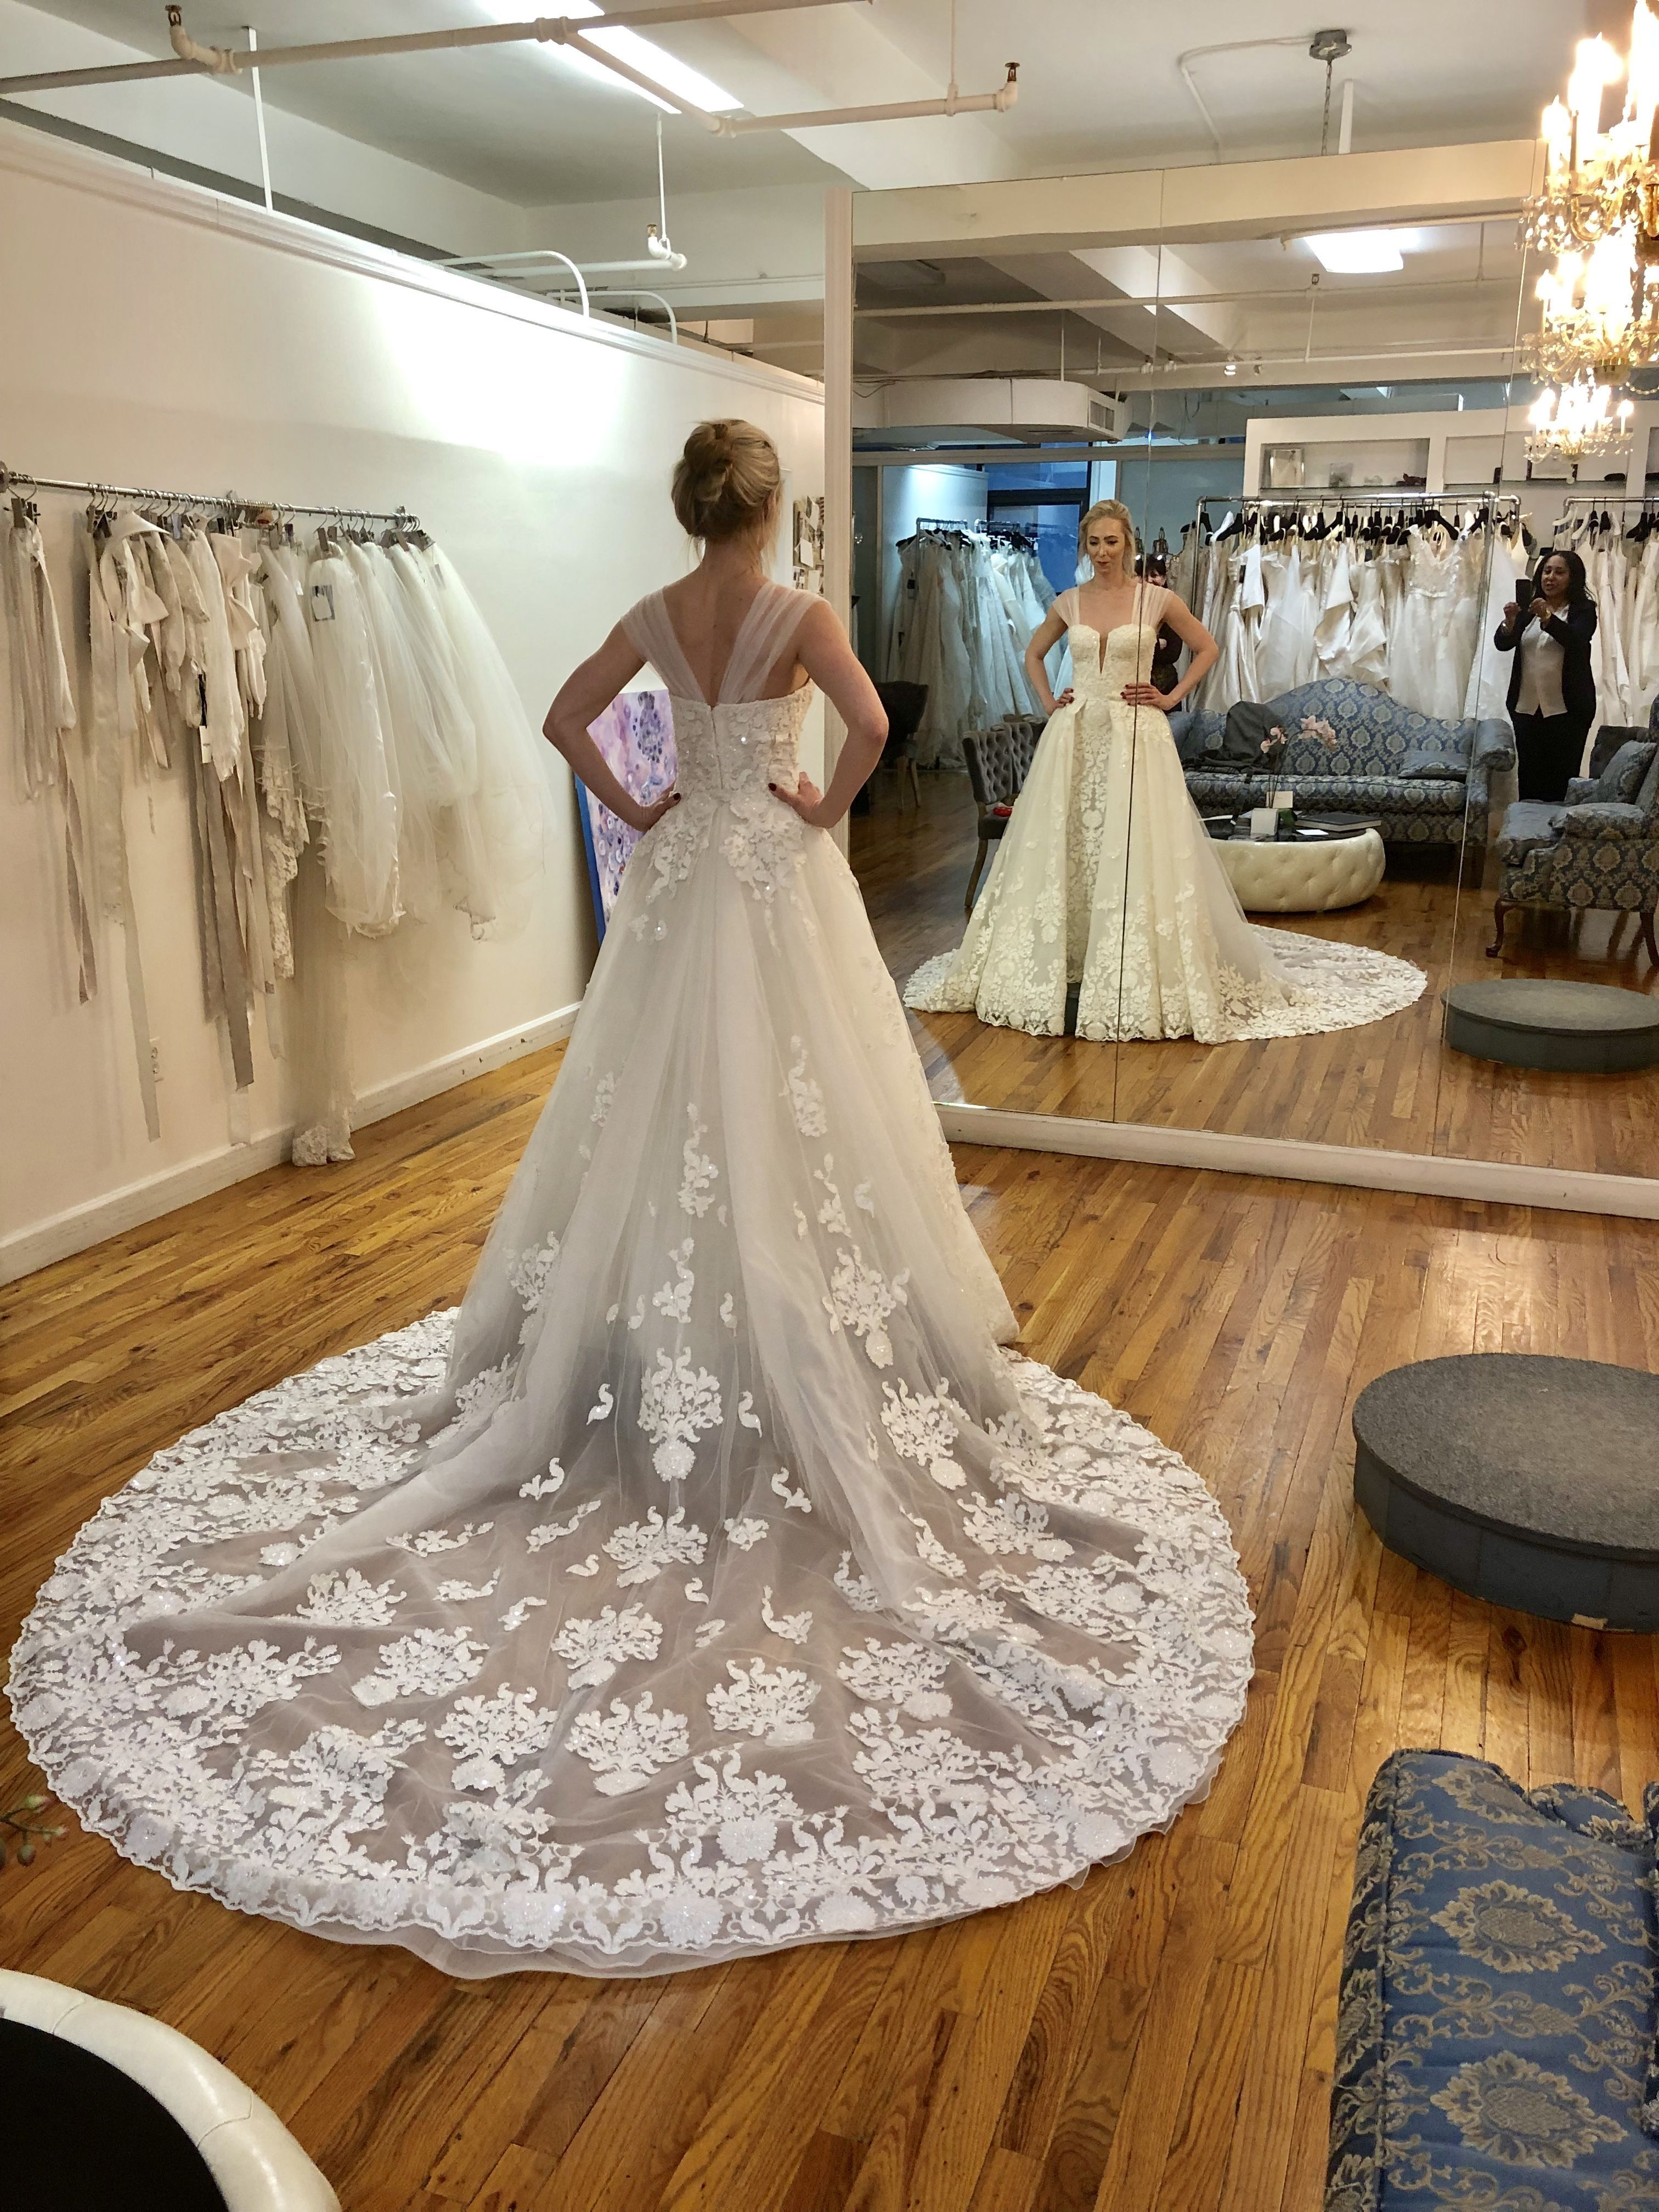 Brides Should Avoid A Gown That Is Uncomfortable It Is Essential That Brides Come To Their Final Fitting To Bridal Wedding Dress Trends Perfect Wedding Dress